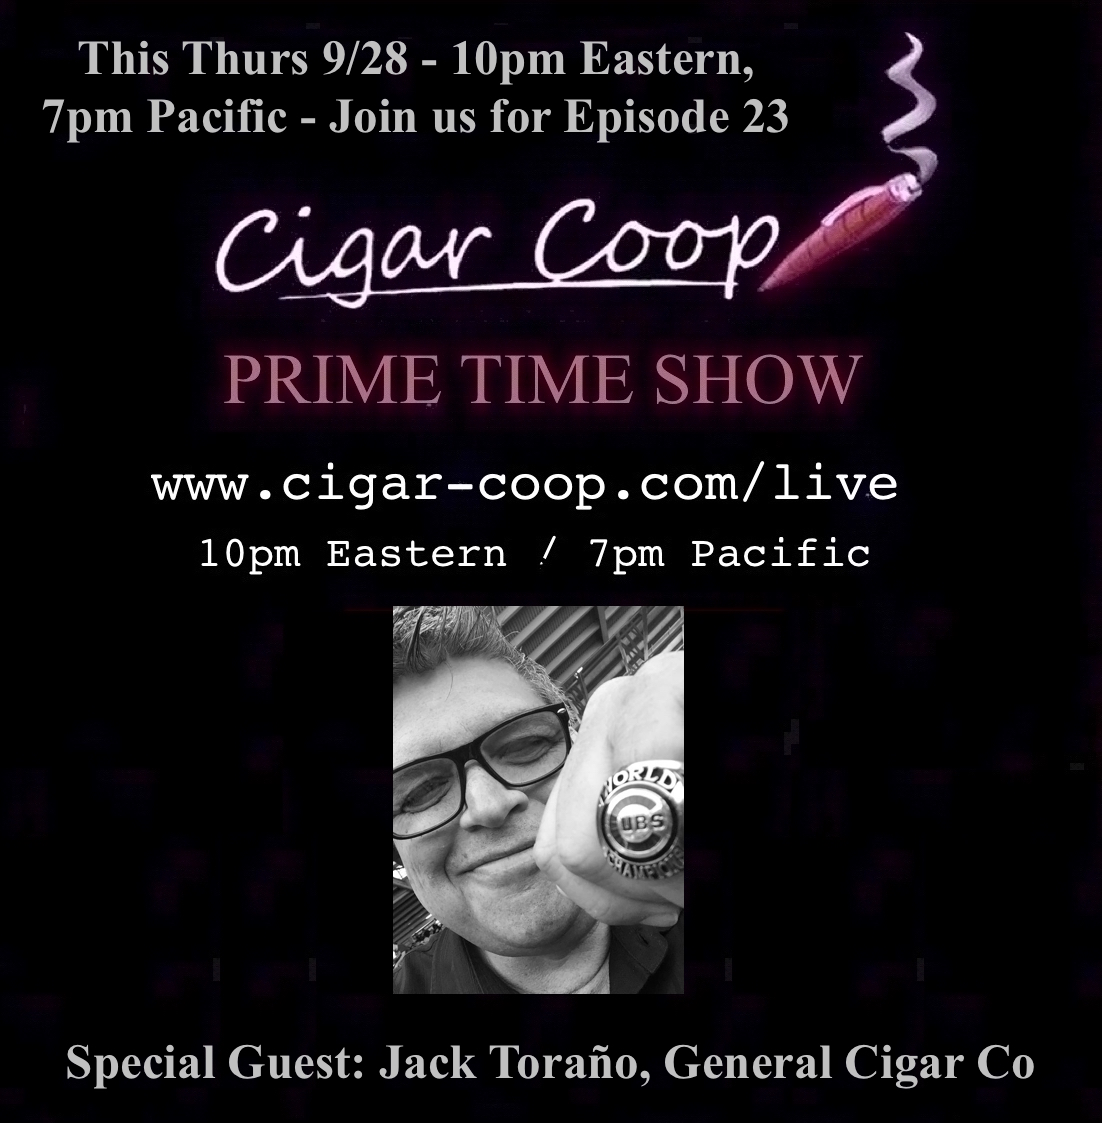 Announcement: Prime Time Show Episode 23: 9/28/17 10pm Eastern, 7pm Pacific